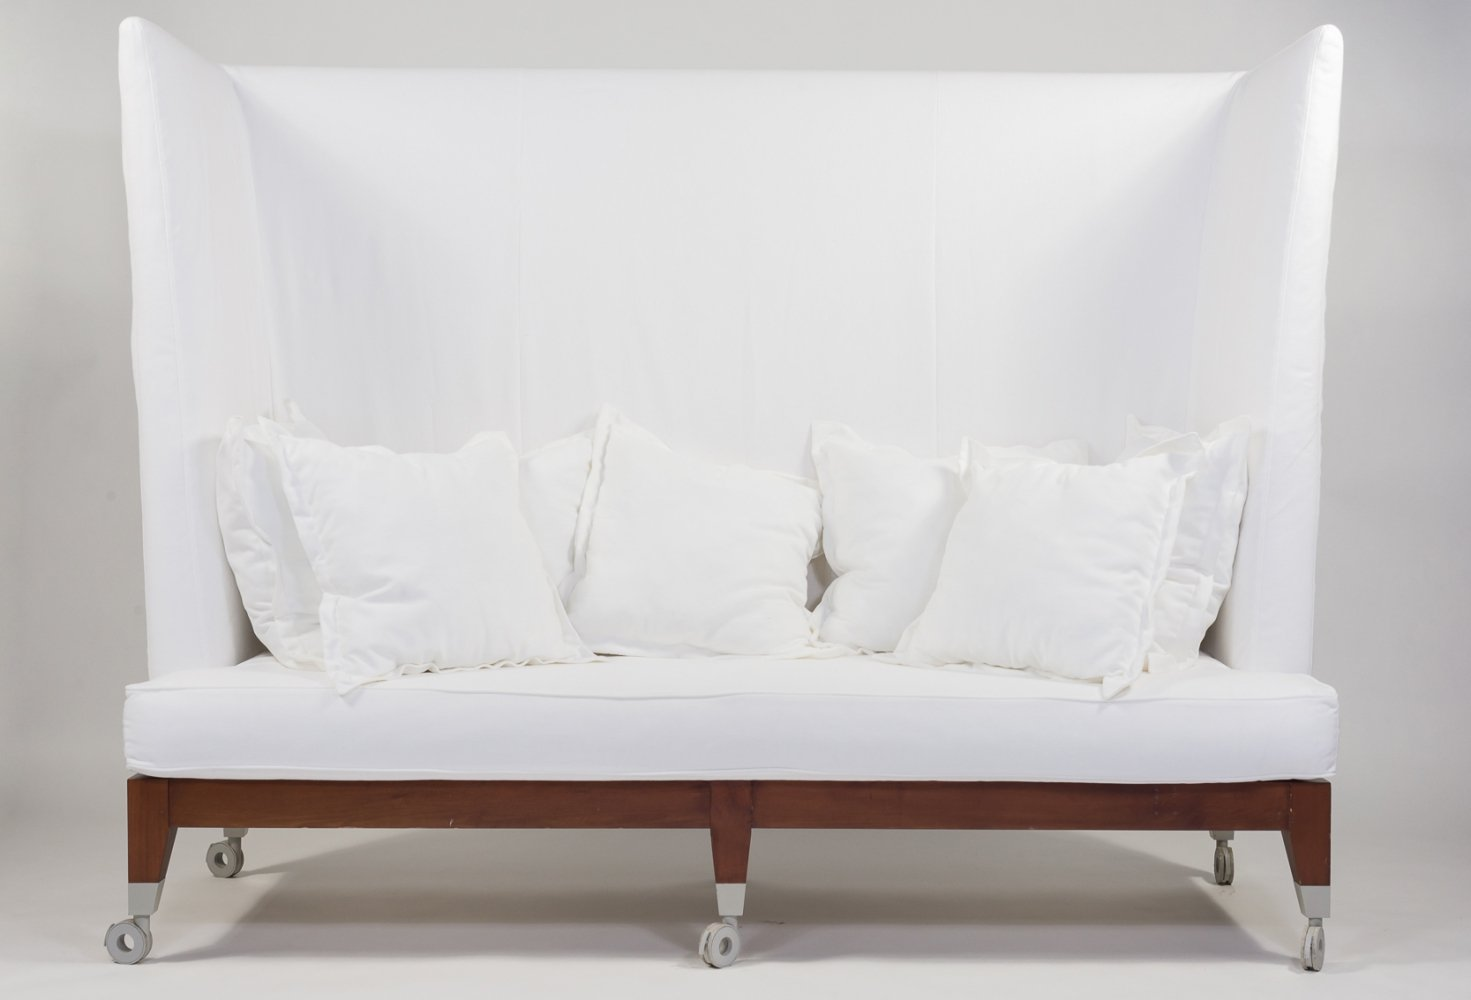 Neoz high back sofa by Philippe Starck for Driade, 1990s